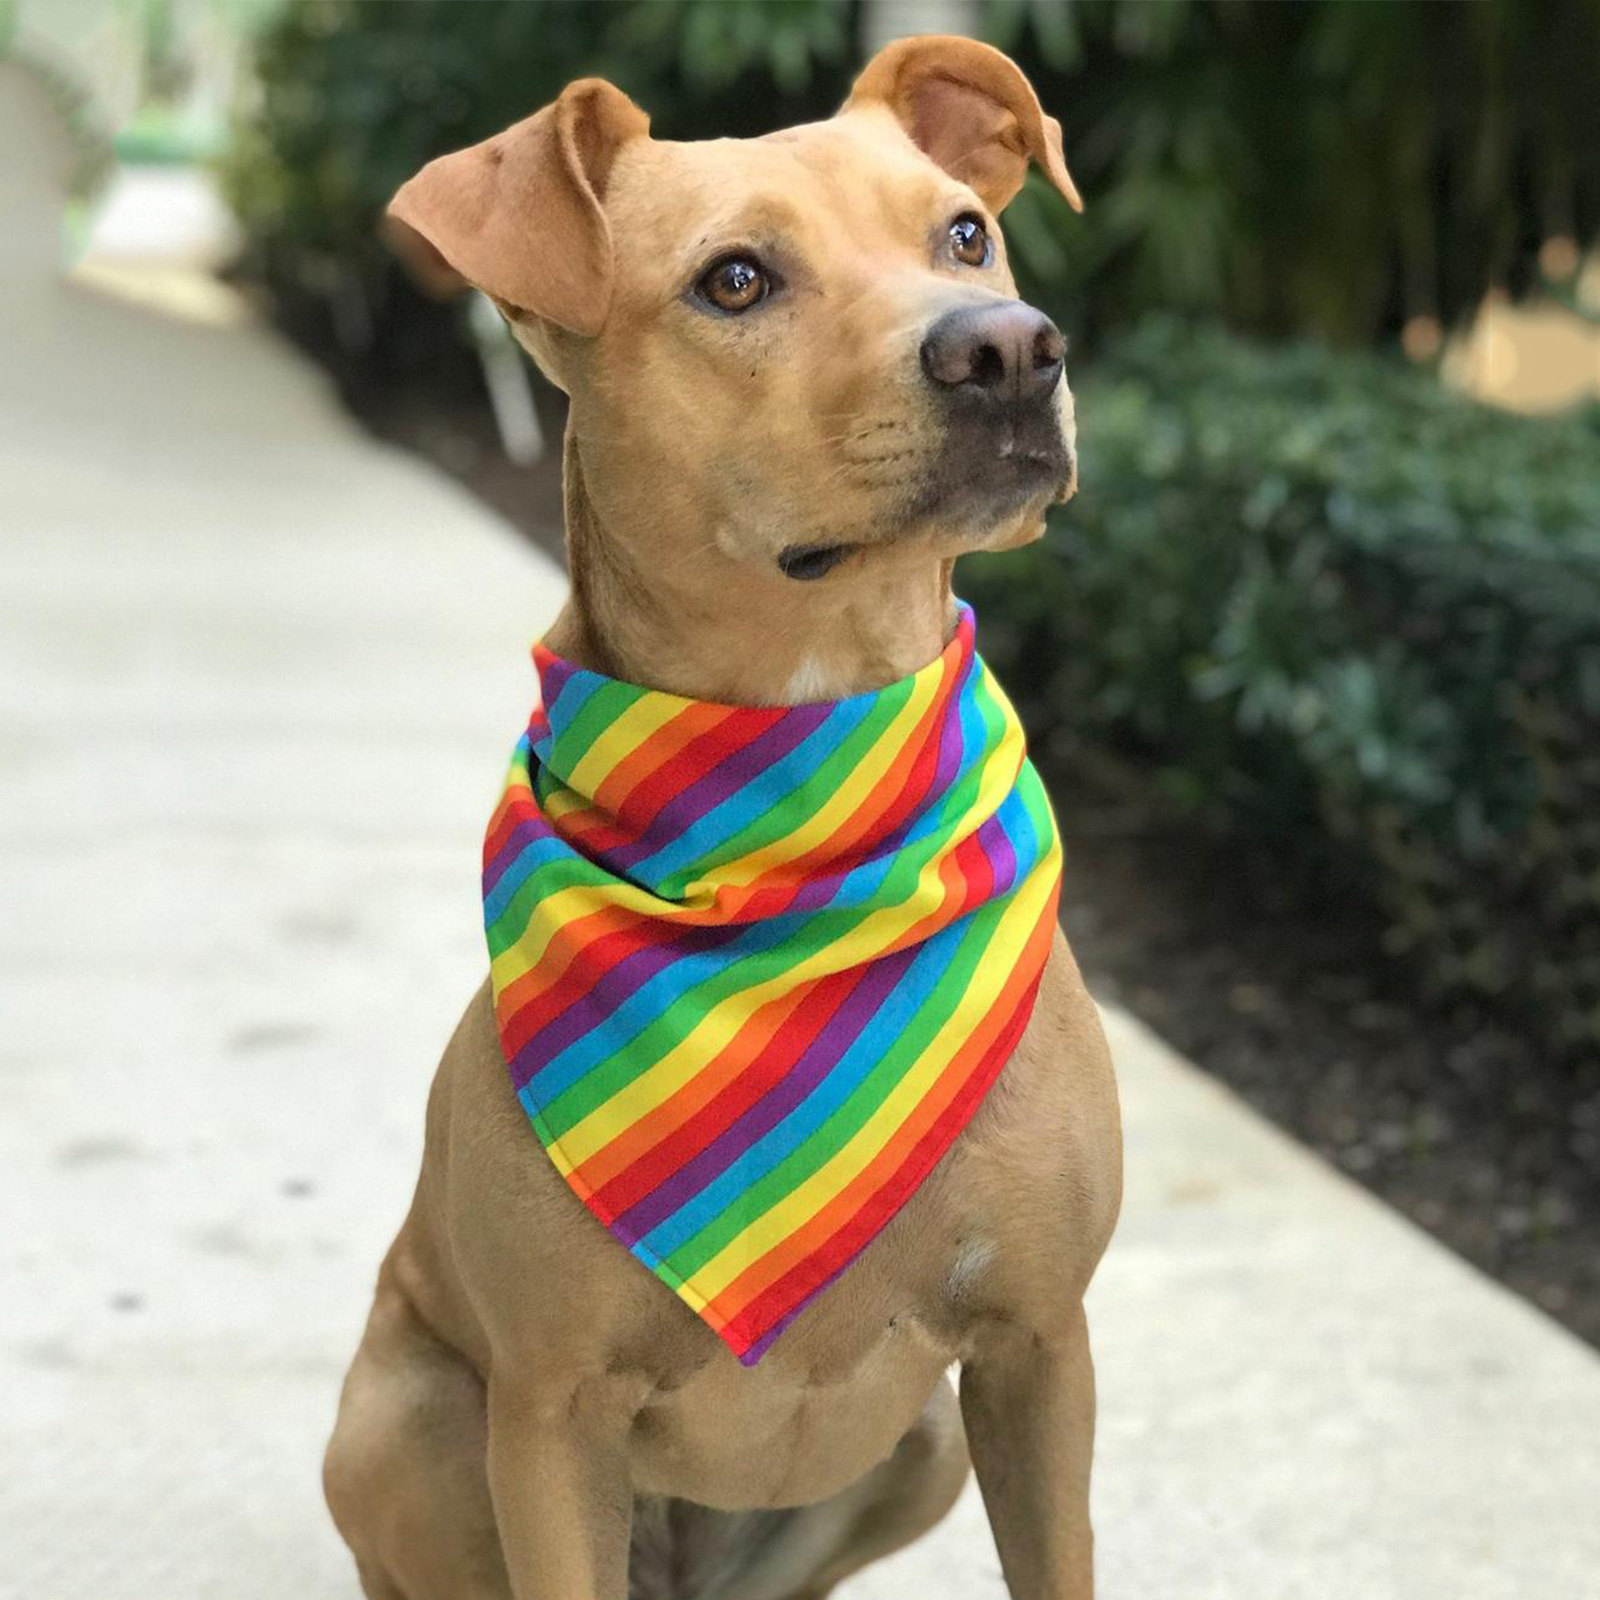 Rainbow-Like Pet Scarf and Hair Tie for Celebrating Pride Month